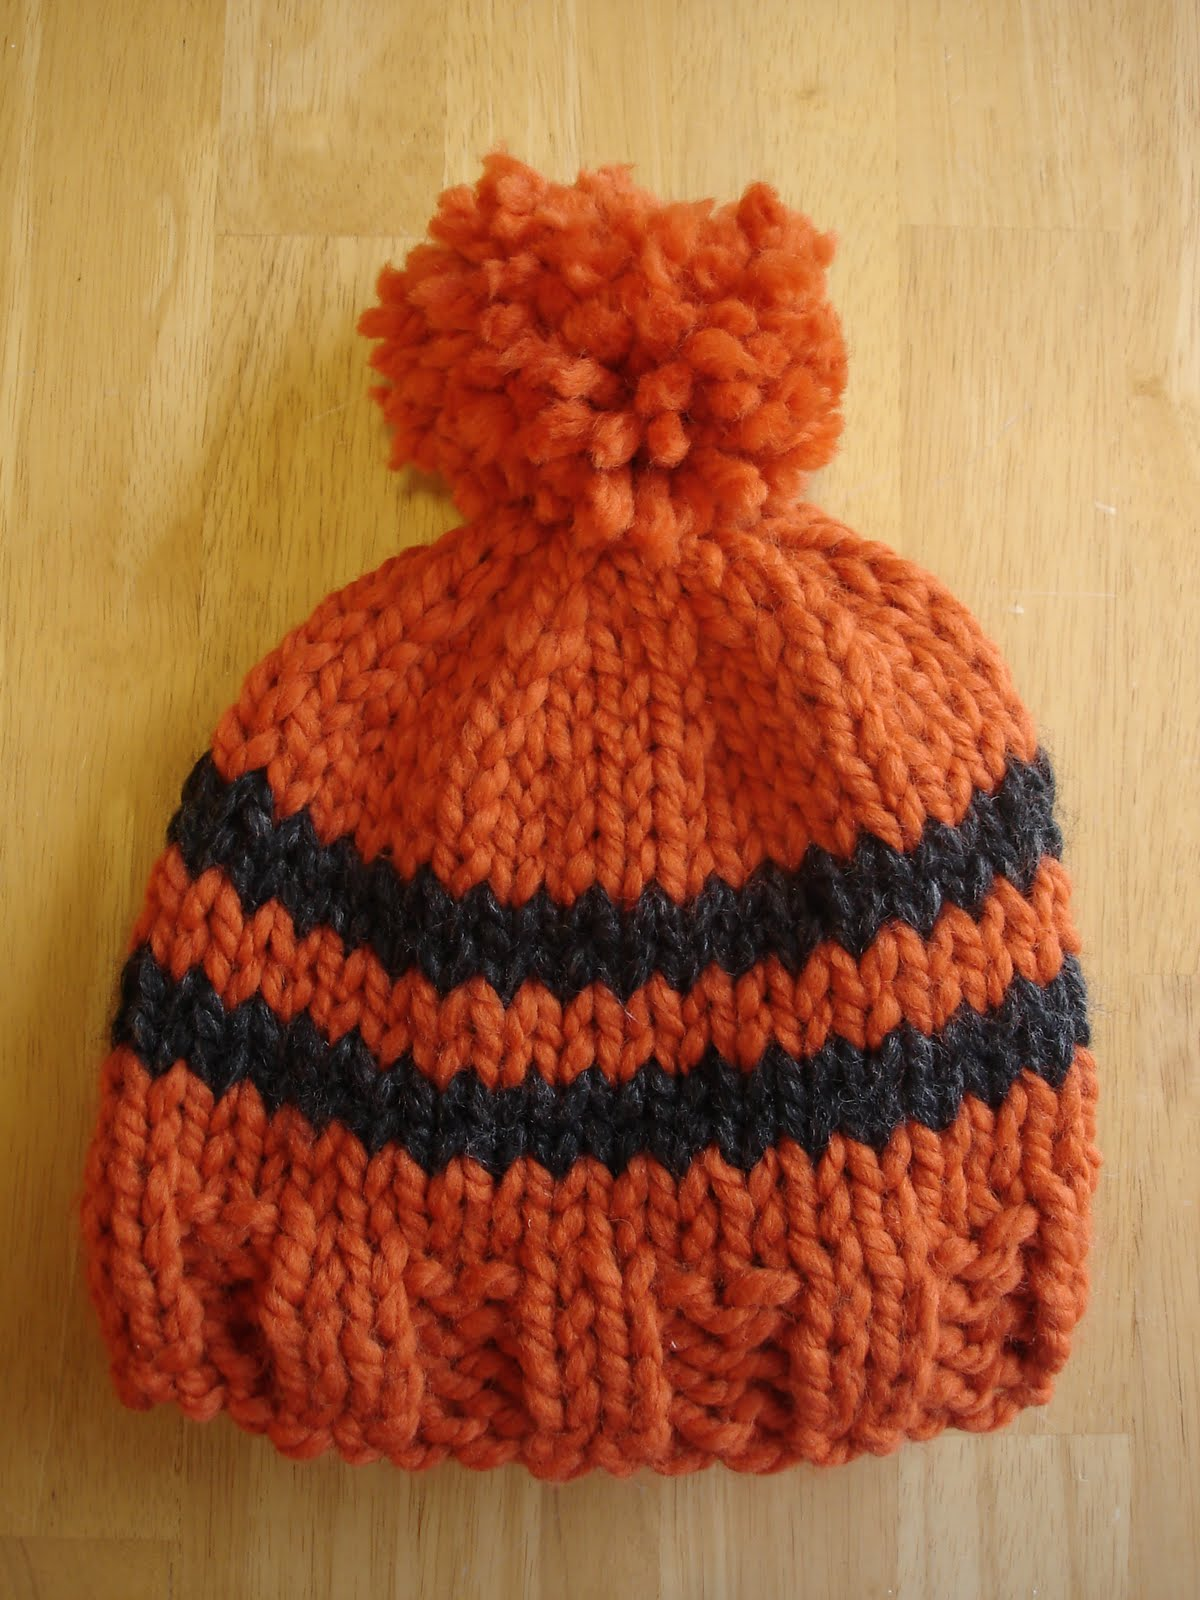 Fiber flux free knitting pattern toddler rugby hat thursday march 3 2011 bankloansurffo Gallery